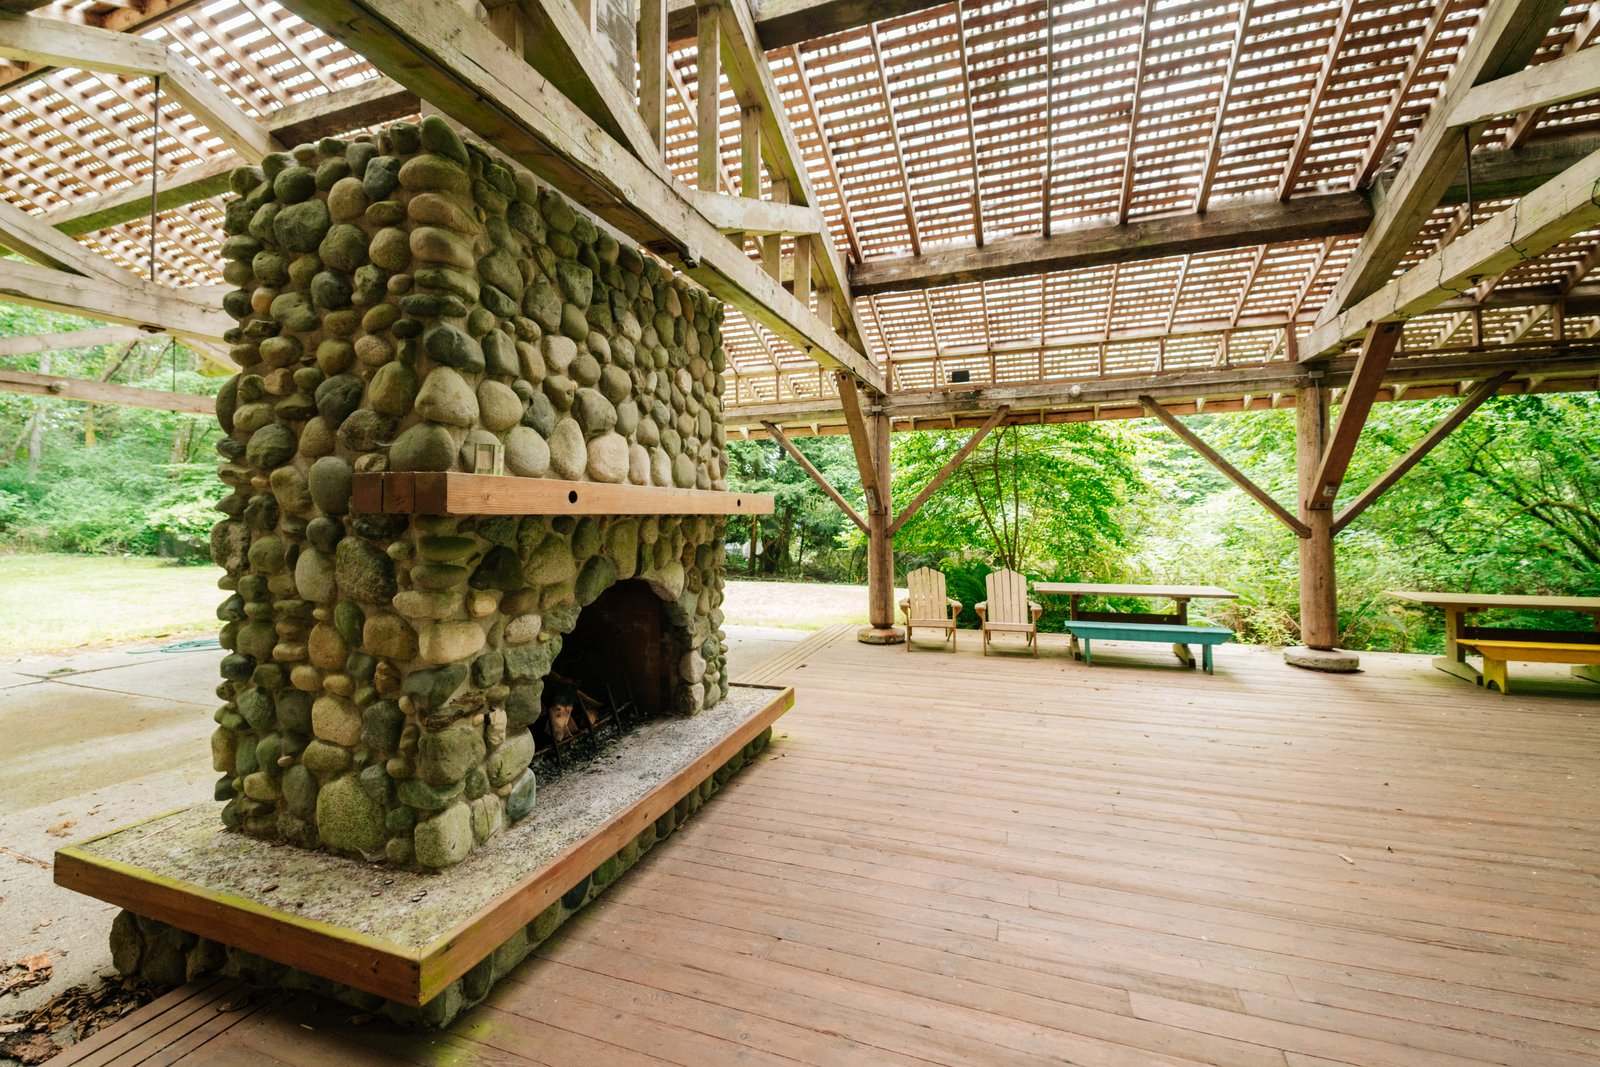 Repurposed Ship Materials and 100-Year-Old Beams Make Up This Tree House-Like Home - Photo 19 of 19